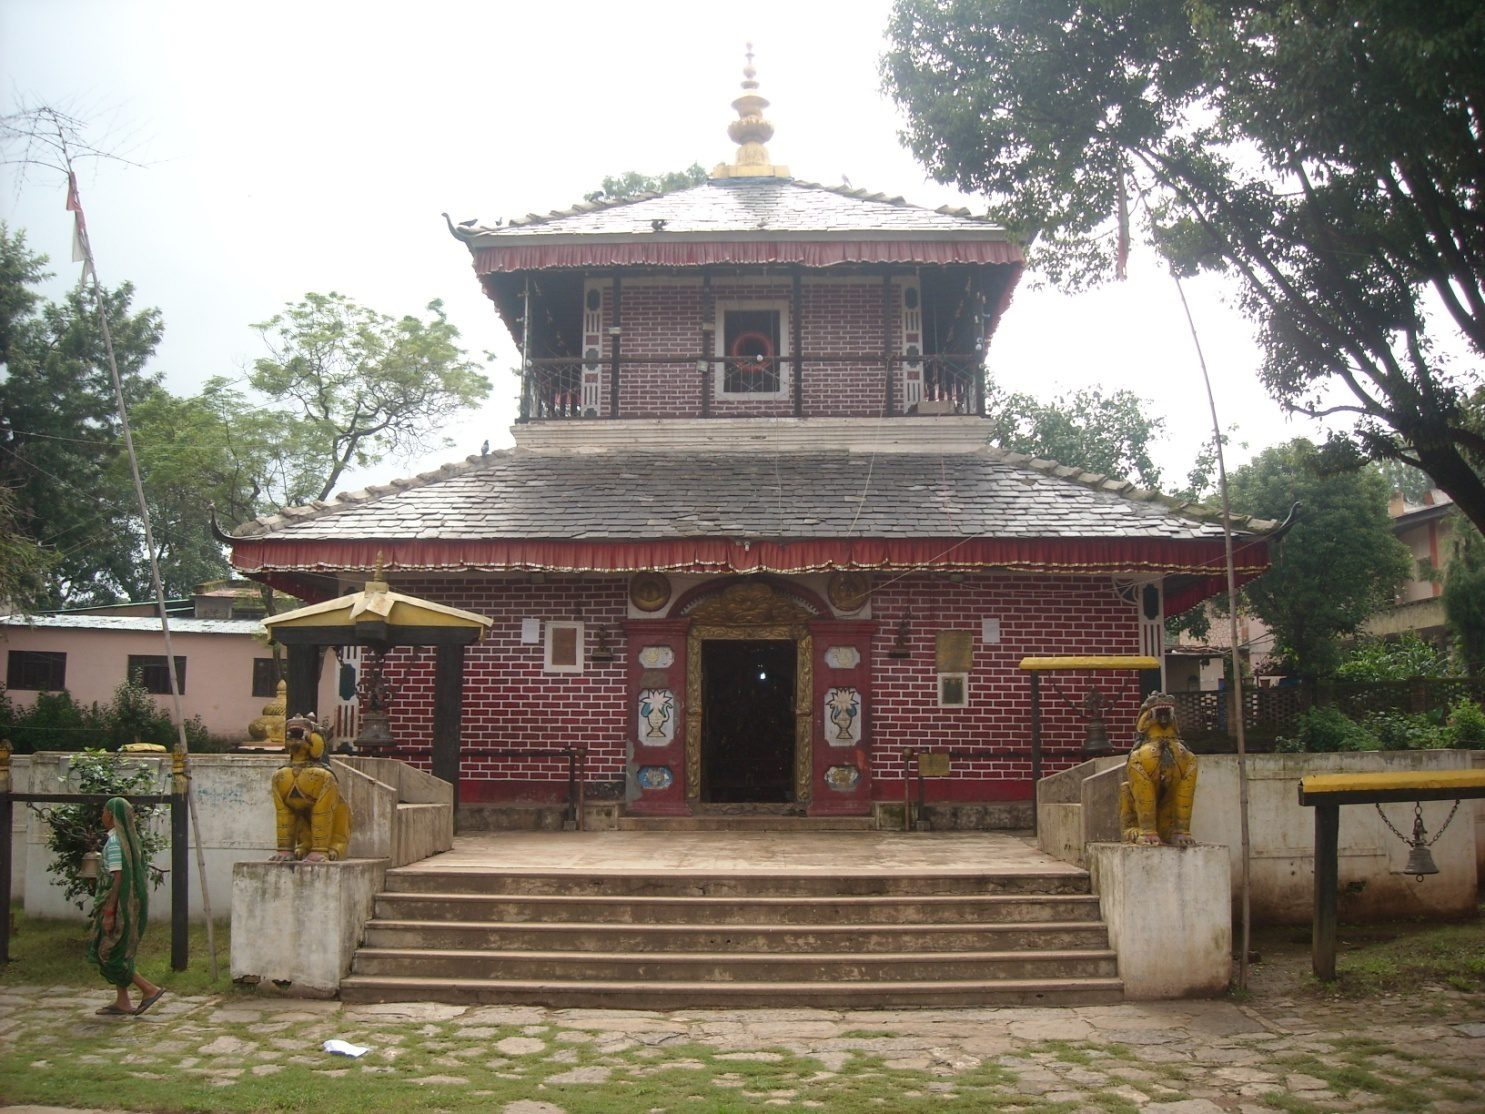 The Rana Ujeshwori Bhagwoti Temple